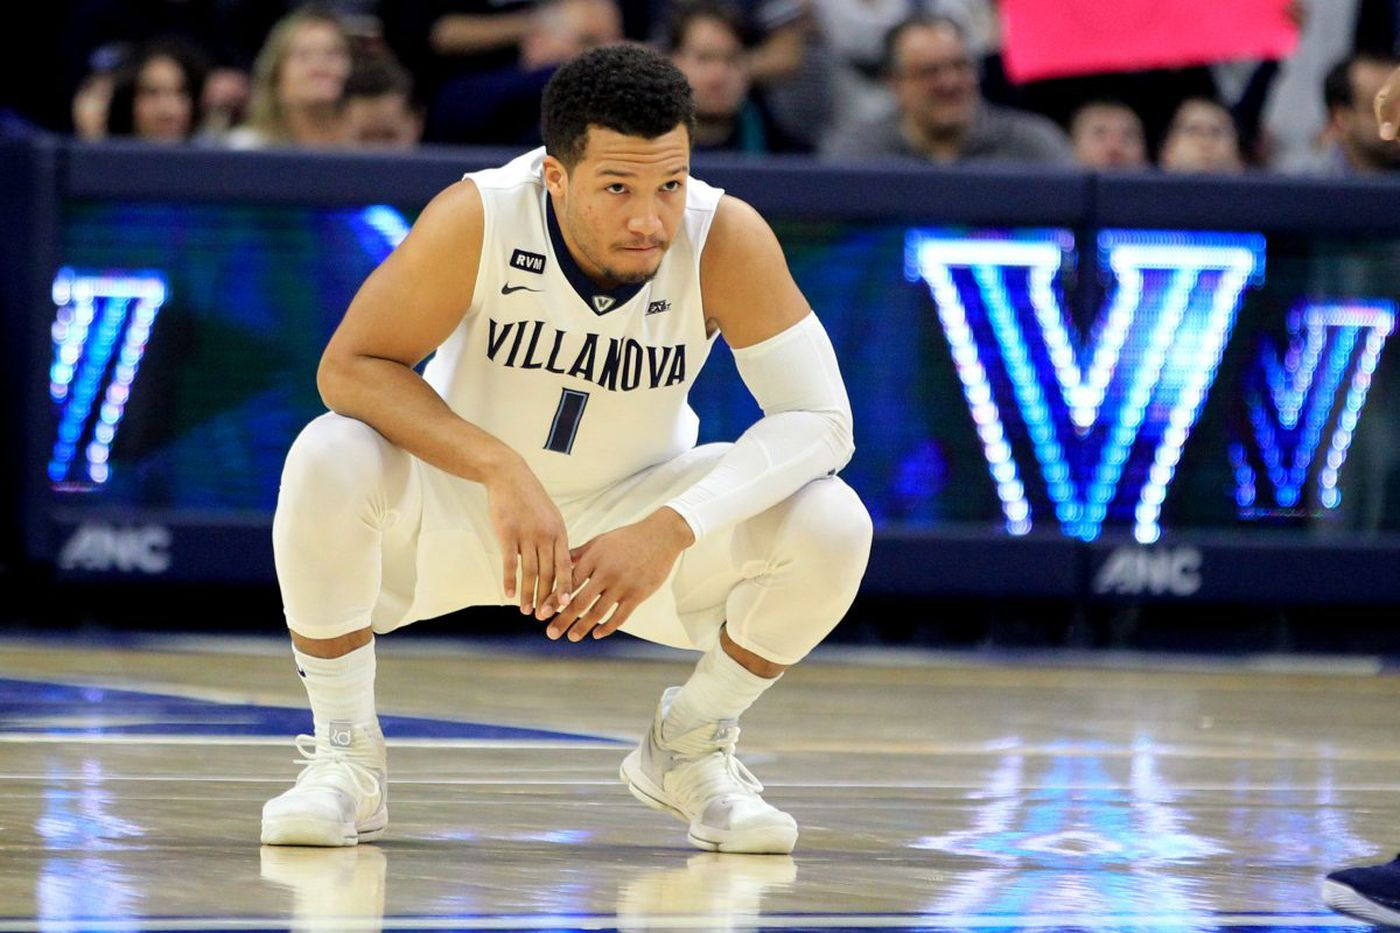 Jalen Brunson honored by Big East for what he does on and off the court